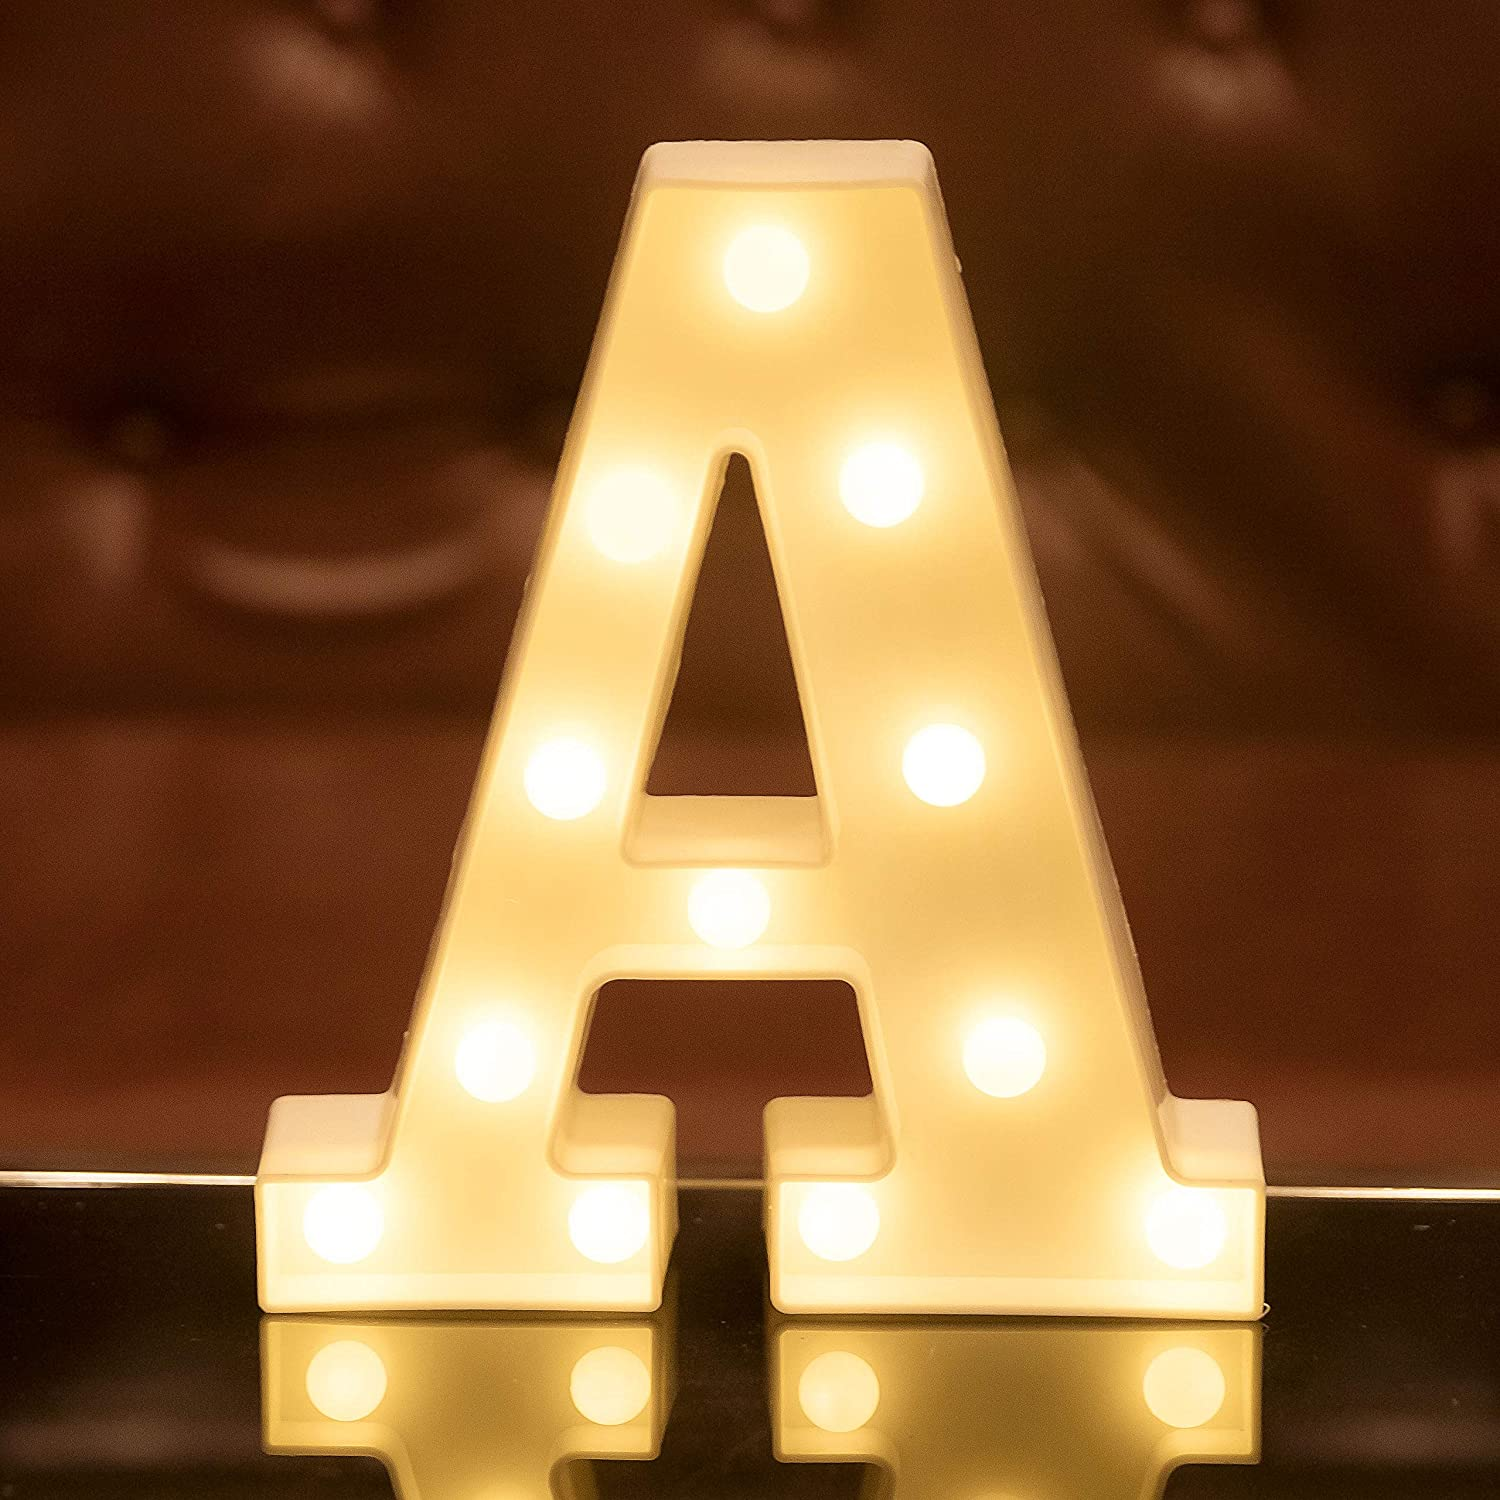 Focux LED Marquee Letter Lights Alphabet Light Up Sign for Night Light Home Party Birthday Wedding Bar Decoration LED Letter Battery Powered Christmas Night Light Lamp Home Bar Decoration (A)